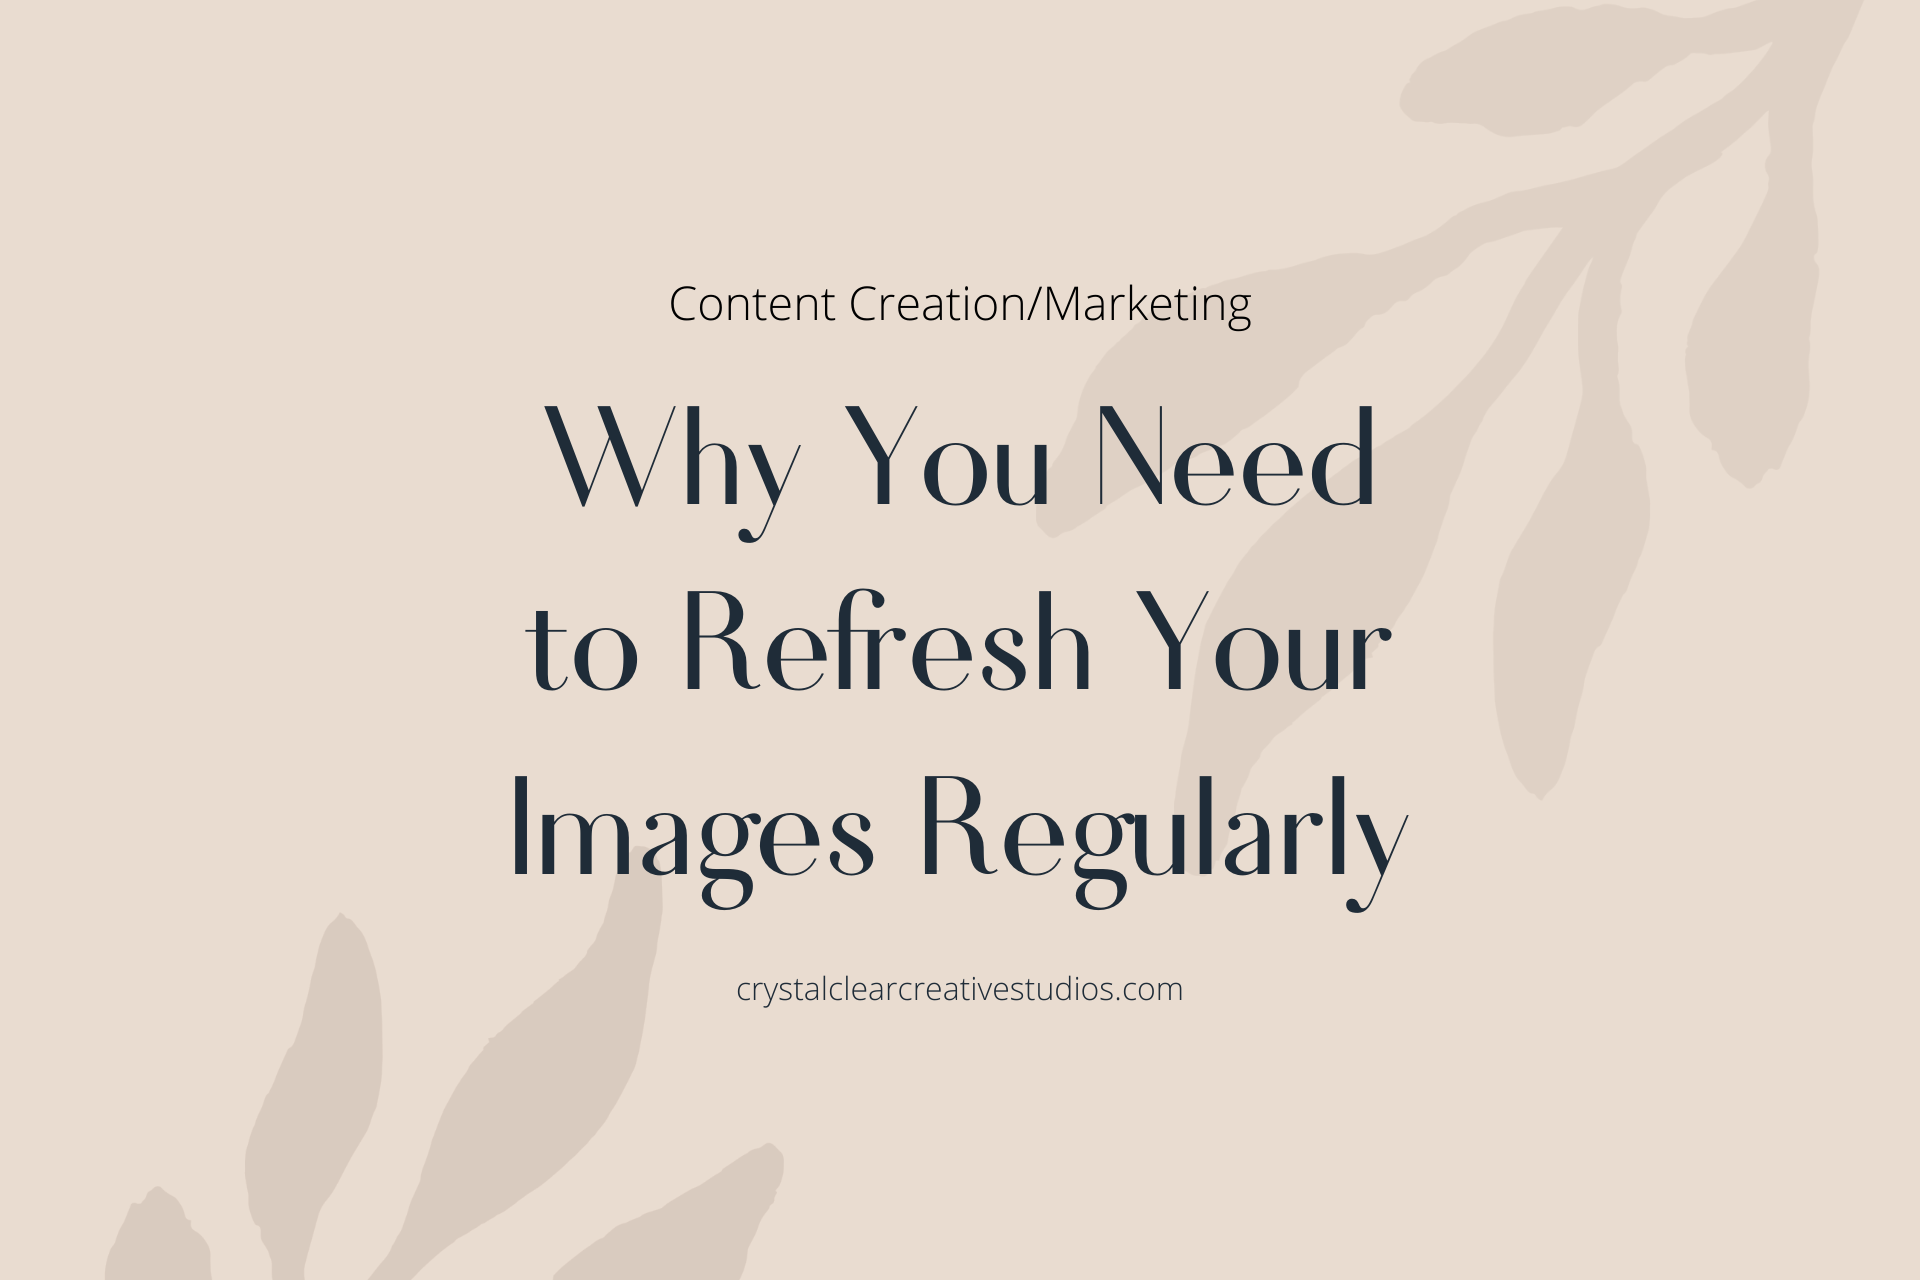 Why You Need to Refresh Your Images Regularly